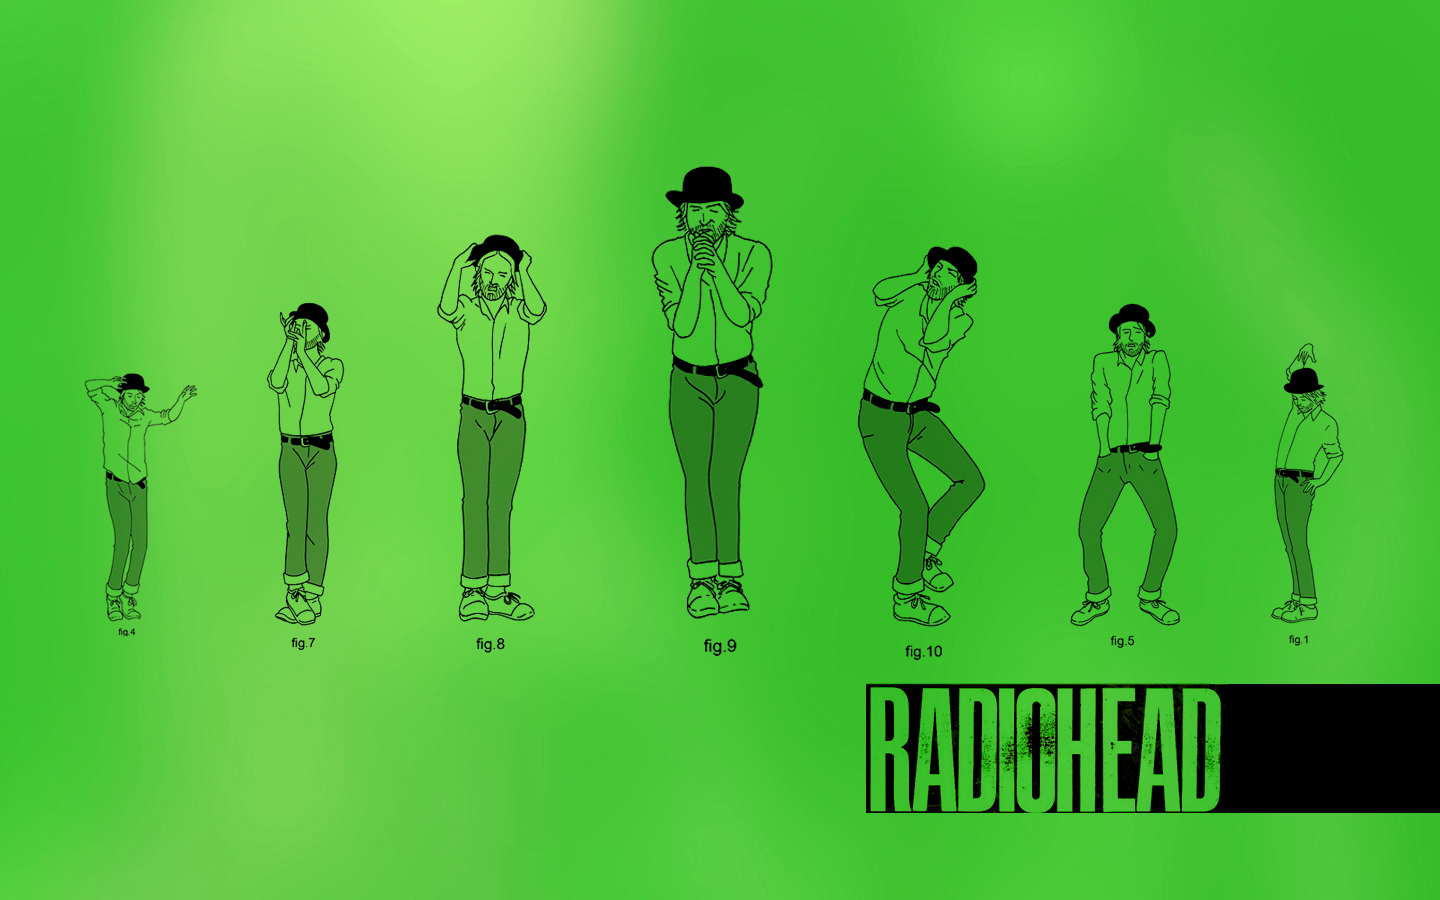 Radiohead Images Lotus Flower Dance Hd Wallpaper And Background